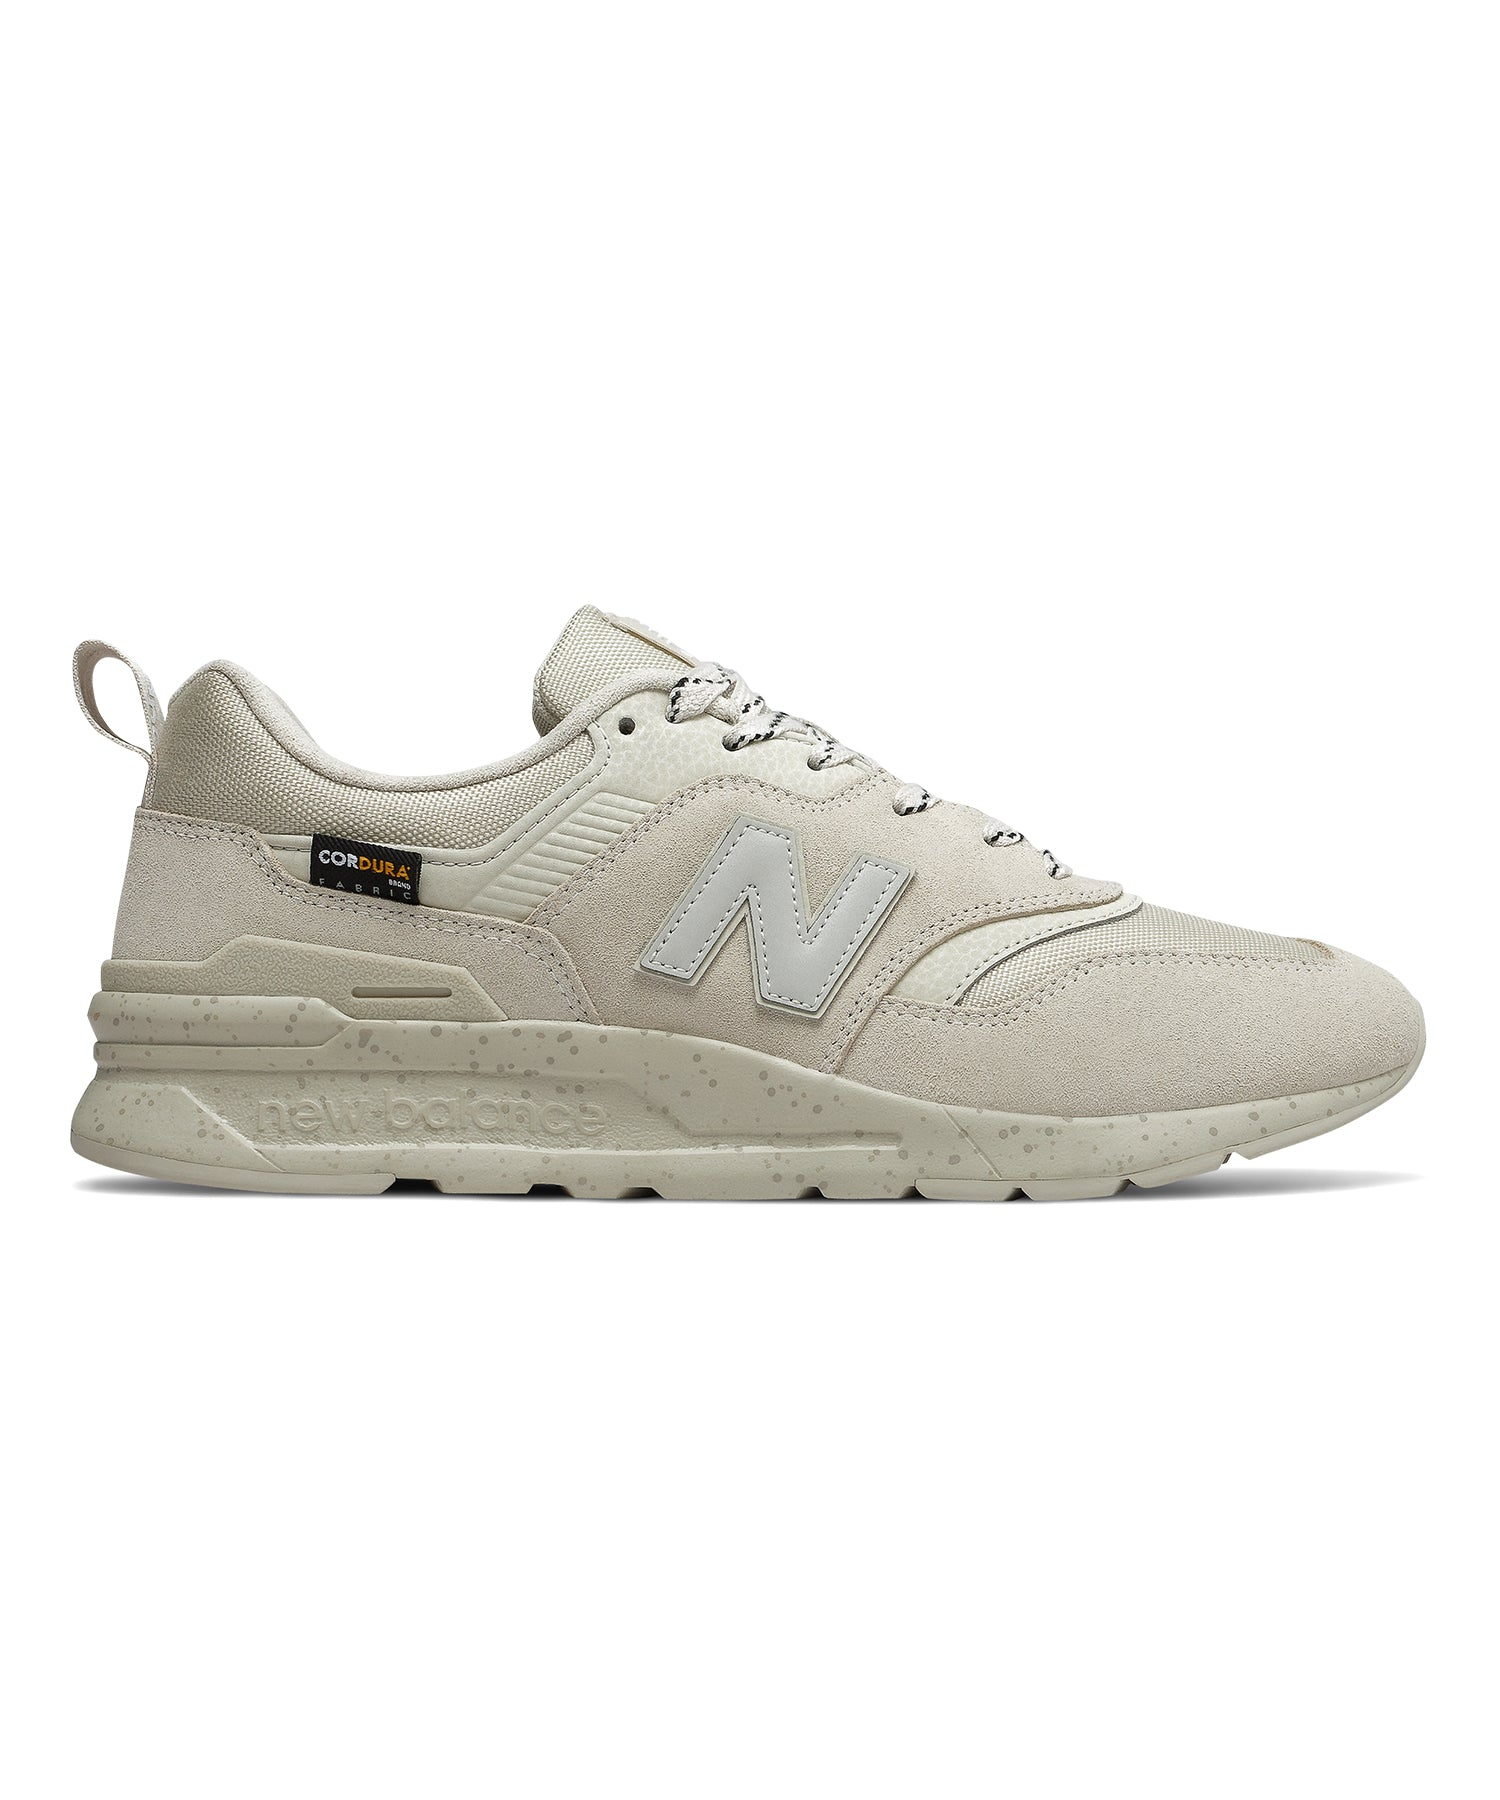 New Balance 997 Cordura in Off White